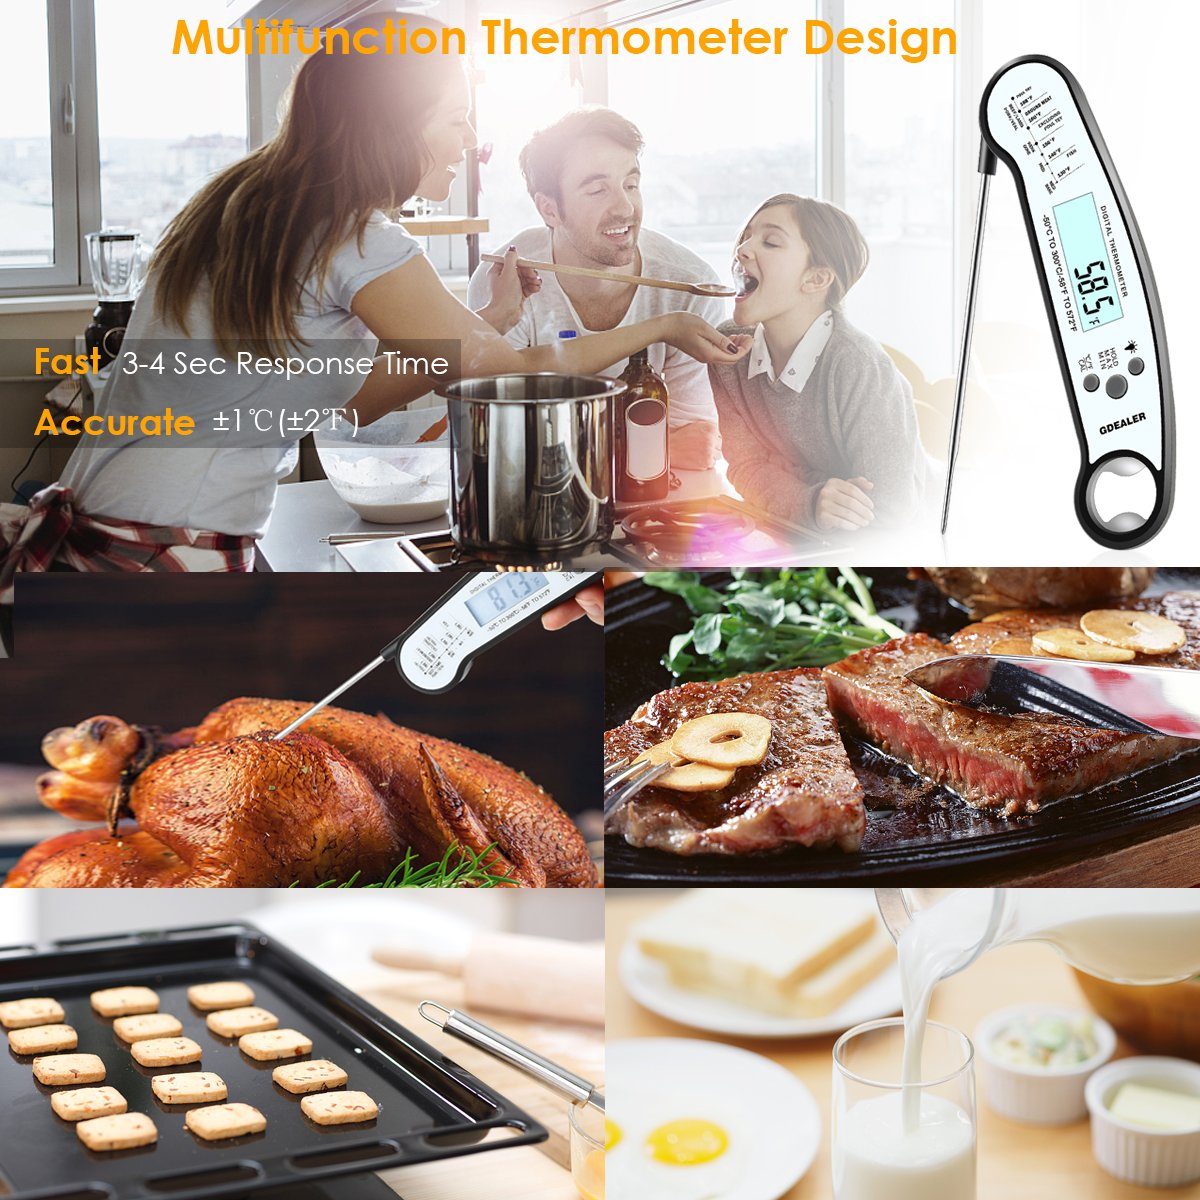 GDEALER Waterproof Digital Meat Thermometer with Bottle Opener Super Fast Instant Read Thermometer BBQ Thermometer with Calibration and Back-lit Function Cooking Thermometer for Food,Candy,Milk by GDEALER (Image #6)